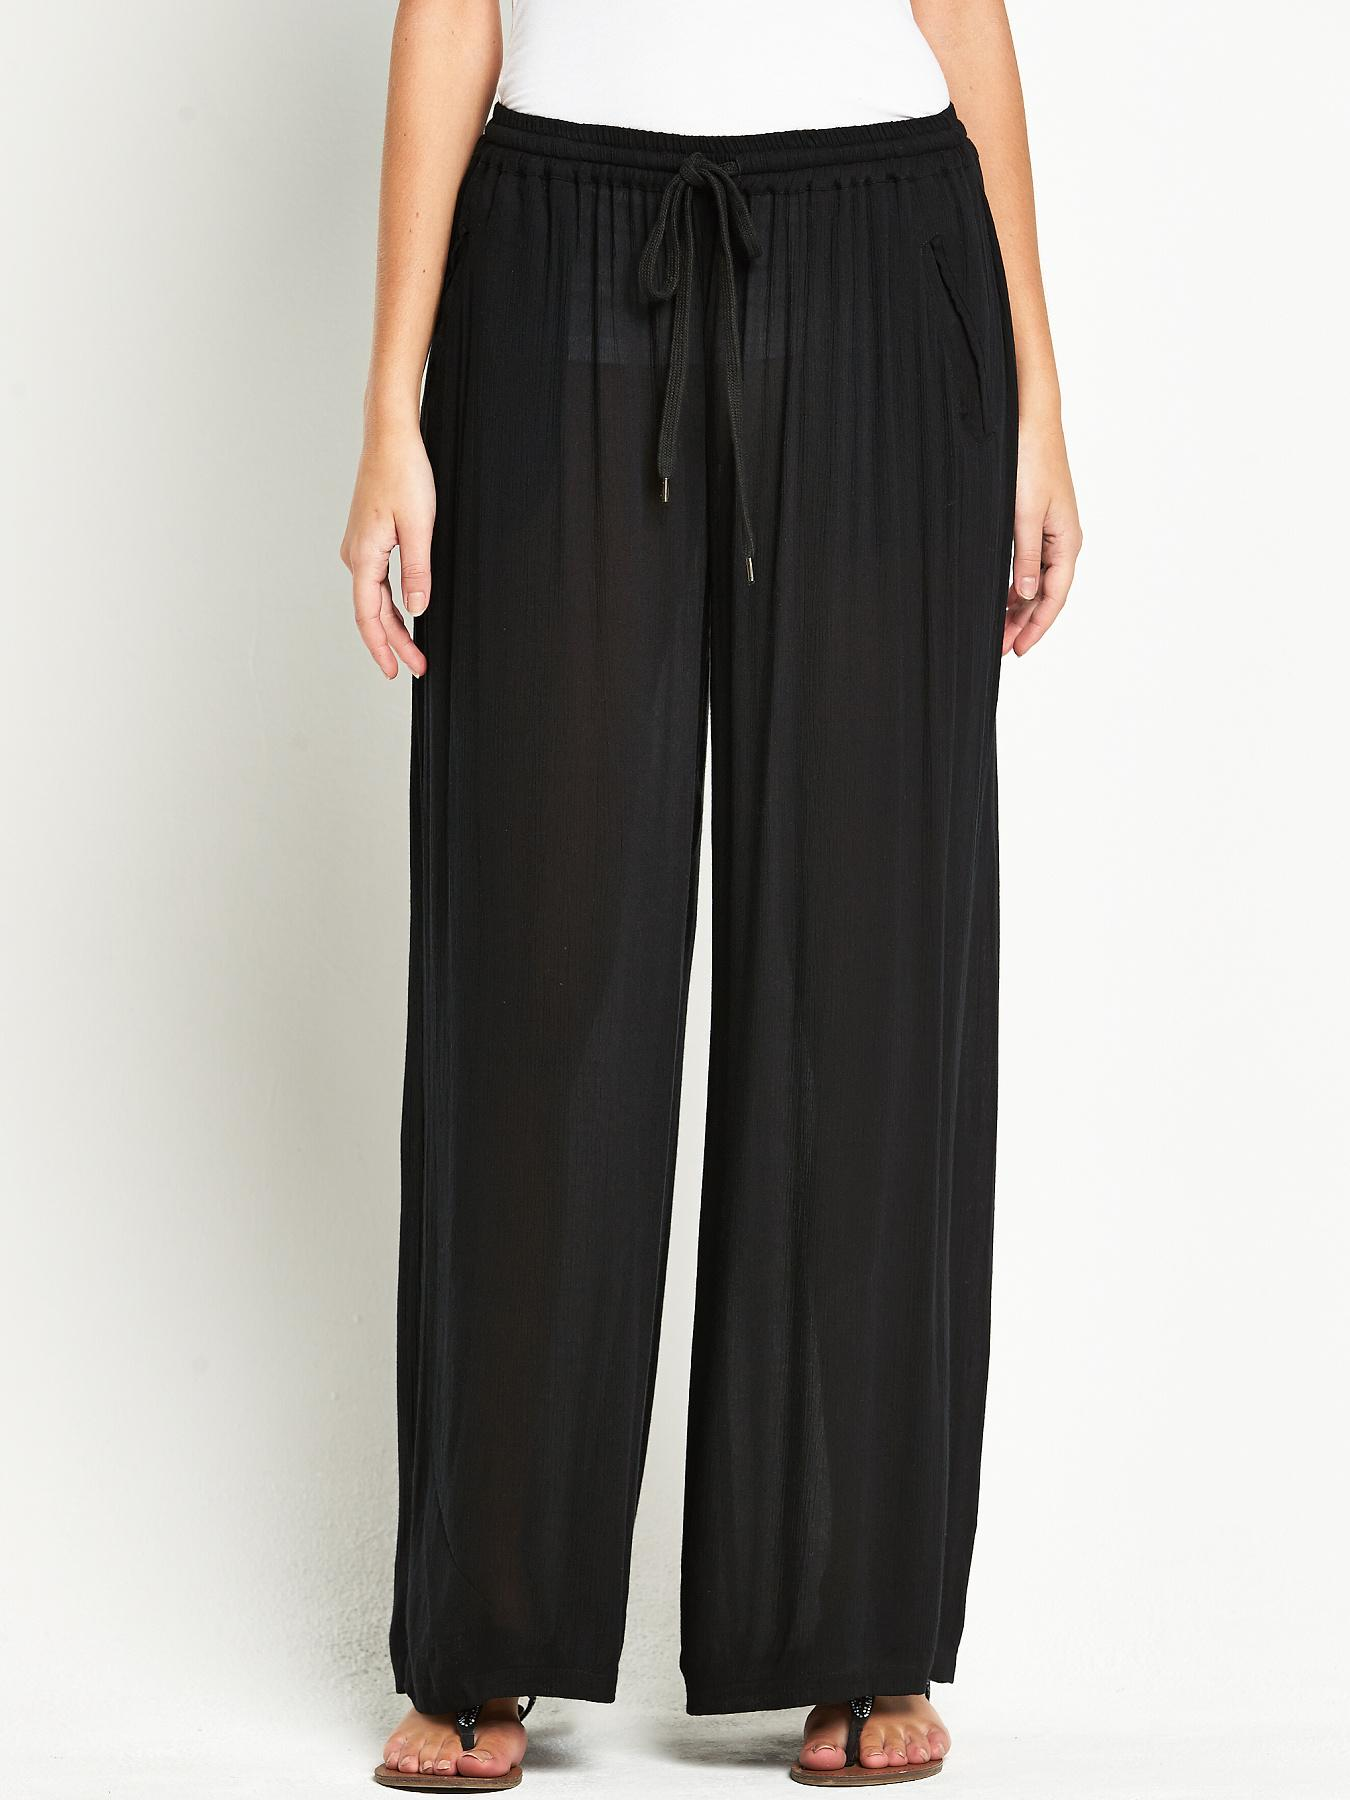 South Crinkle Wide Leg Trousers - Black, Black